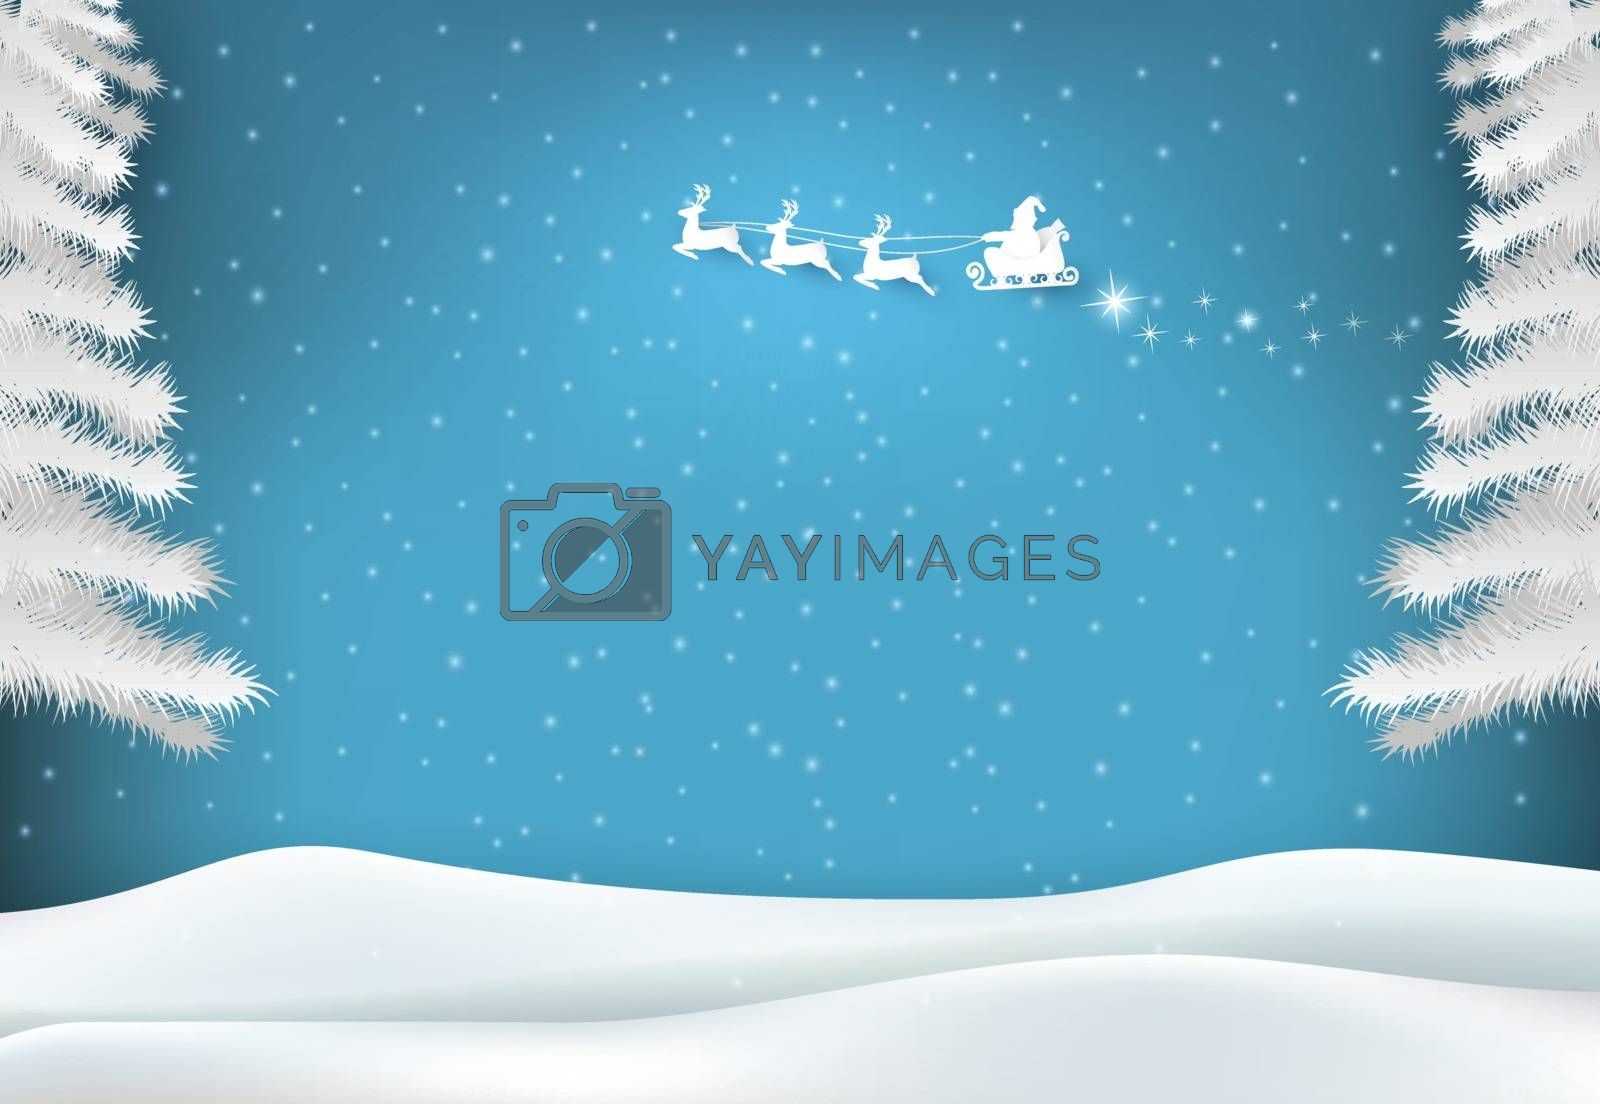 Winter holiday santa with snowy on blue sky background. Christmas season paper art style illustration.